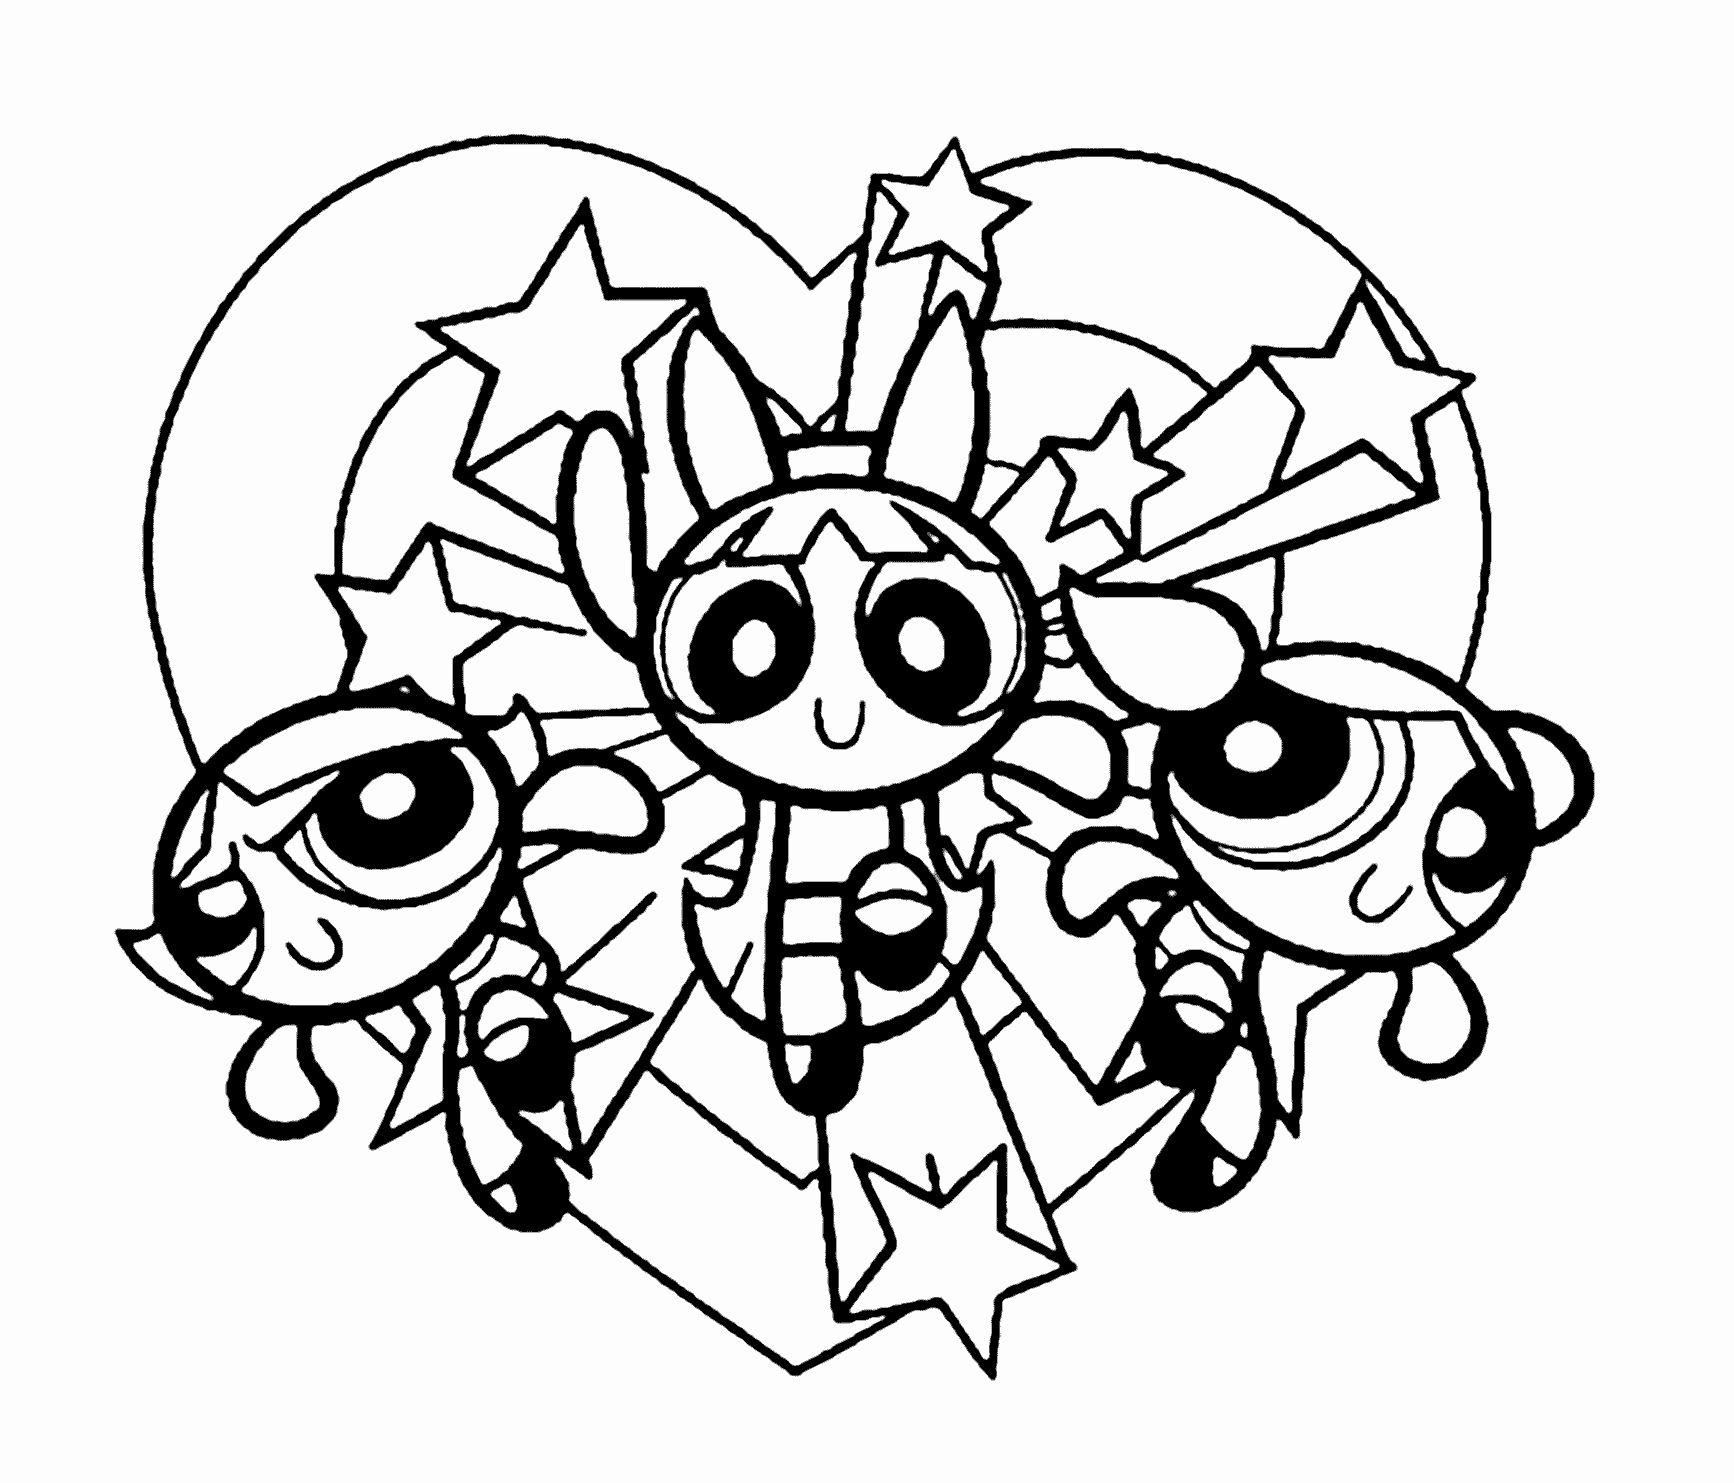 Powerpuff Girls Coloring Page Lovely Cool Powerpuff Girls On Vacation Coloring Pages For Ki In 2020 Coloring Pages For Girls Love Coloring Pages Cartoon Coloring Pages